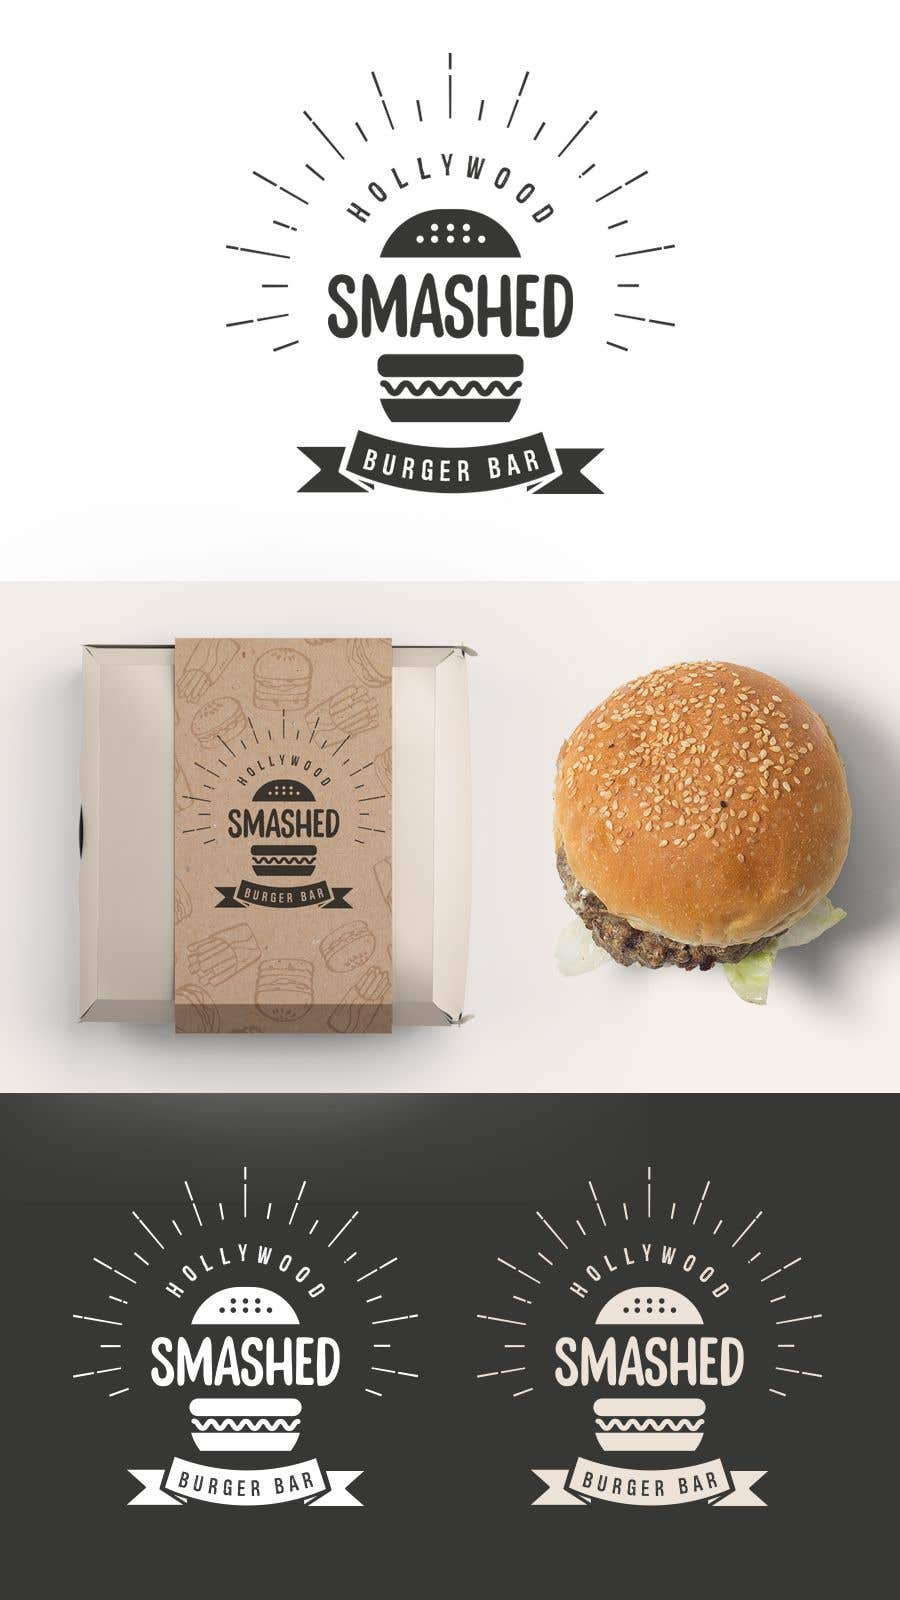 Konkurrenceindlæg #293 for Branding and Design for a New Burger Restaurant and Bar Concept in Hollywood